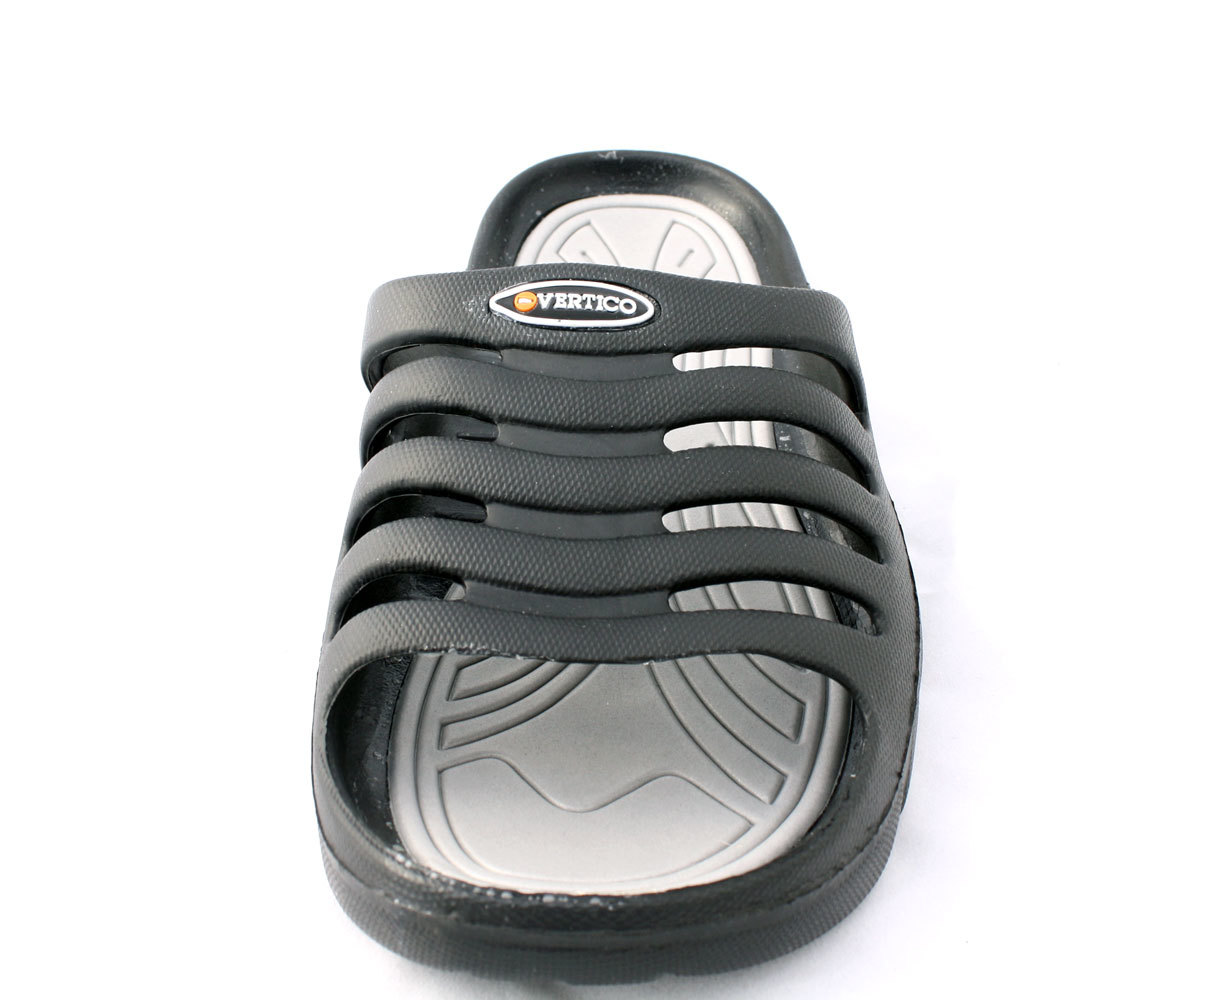 f5bbe211f1c8 Vertico - Vertico Men s Shower and Pool Slide On Sandal - Walmart.com